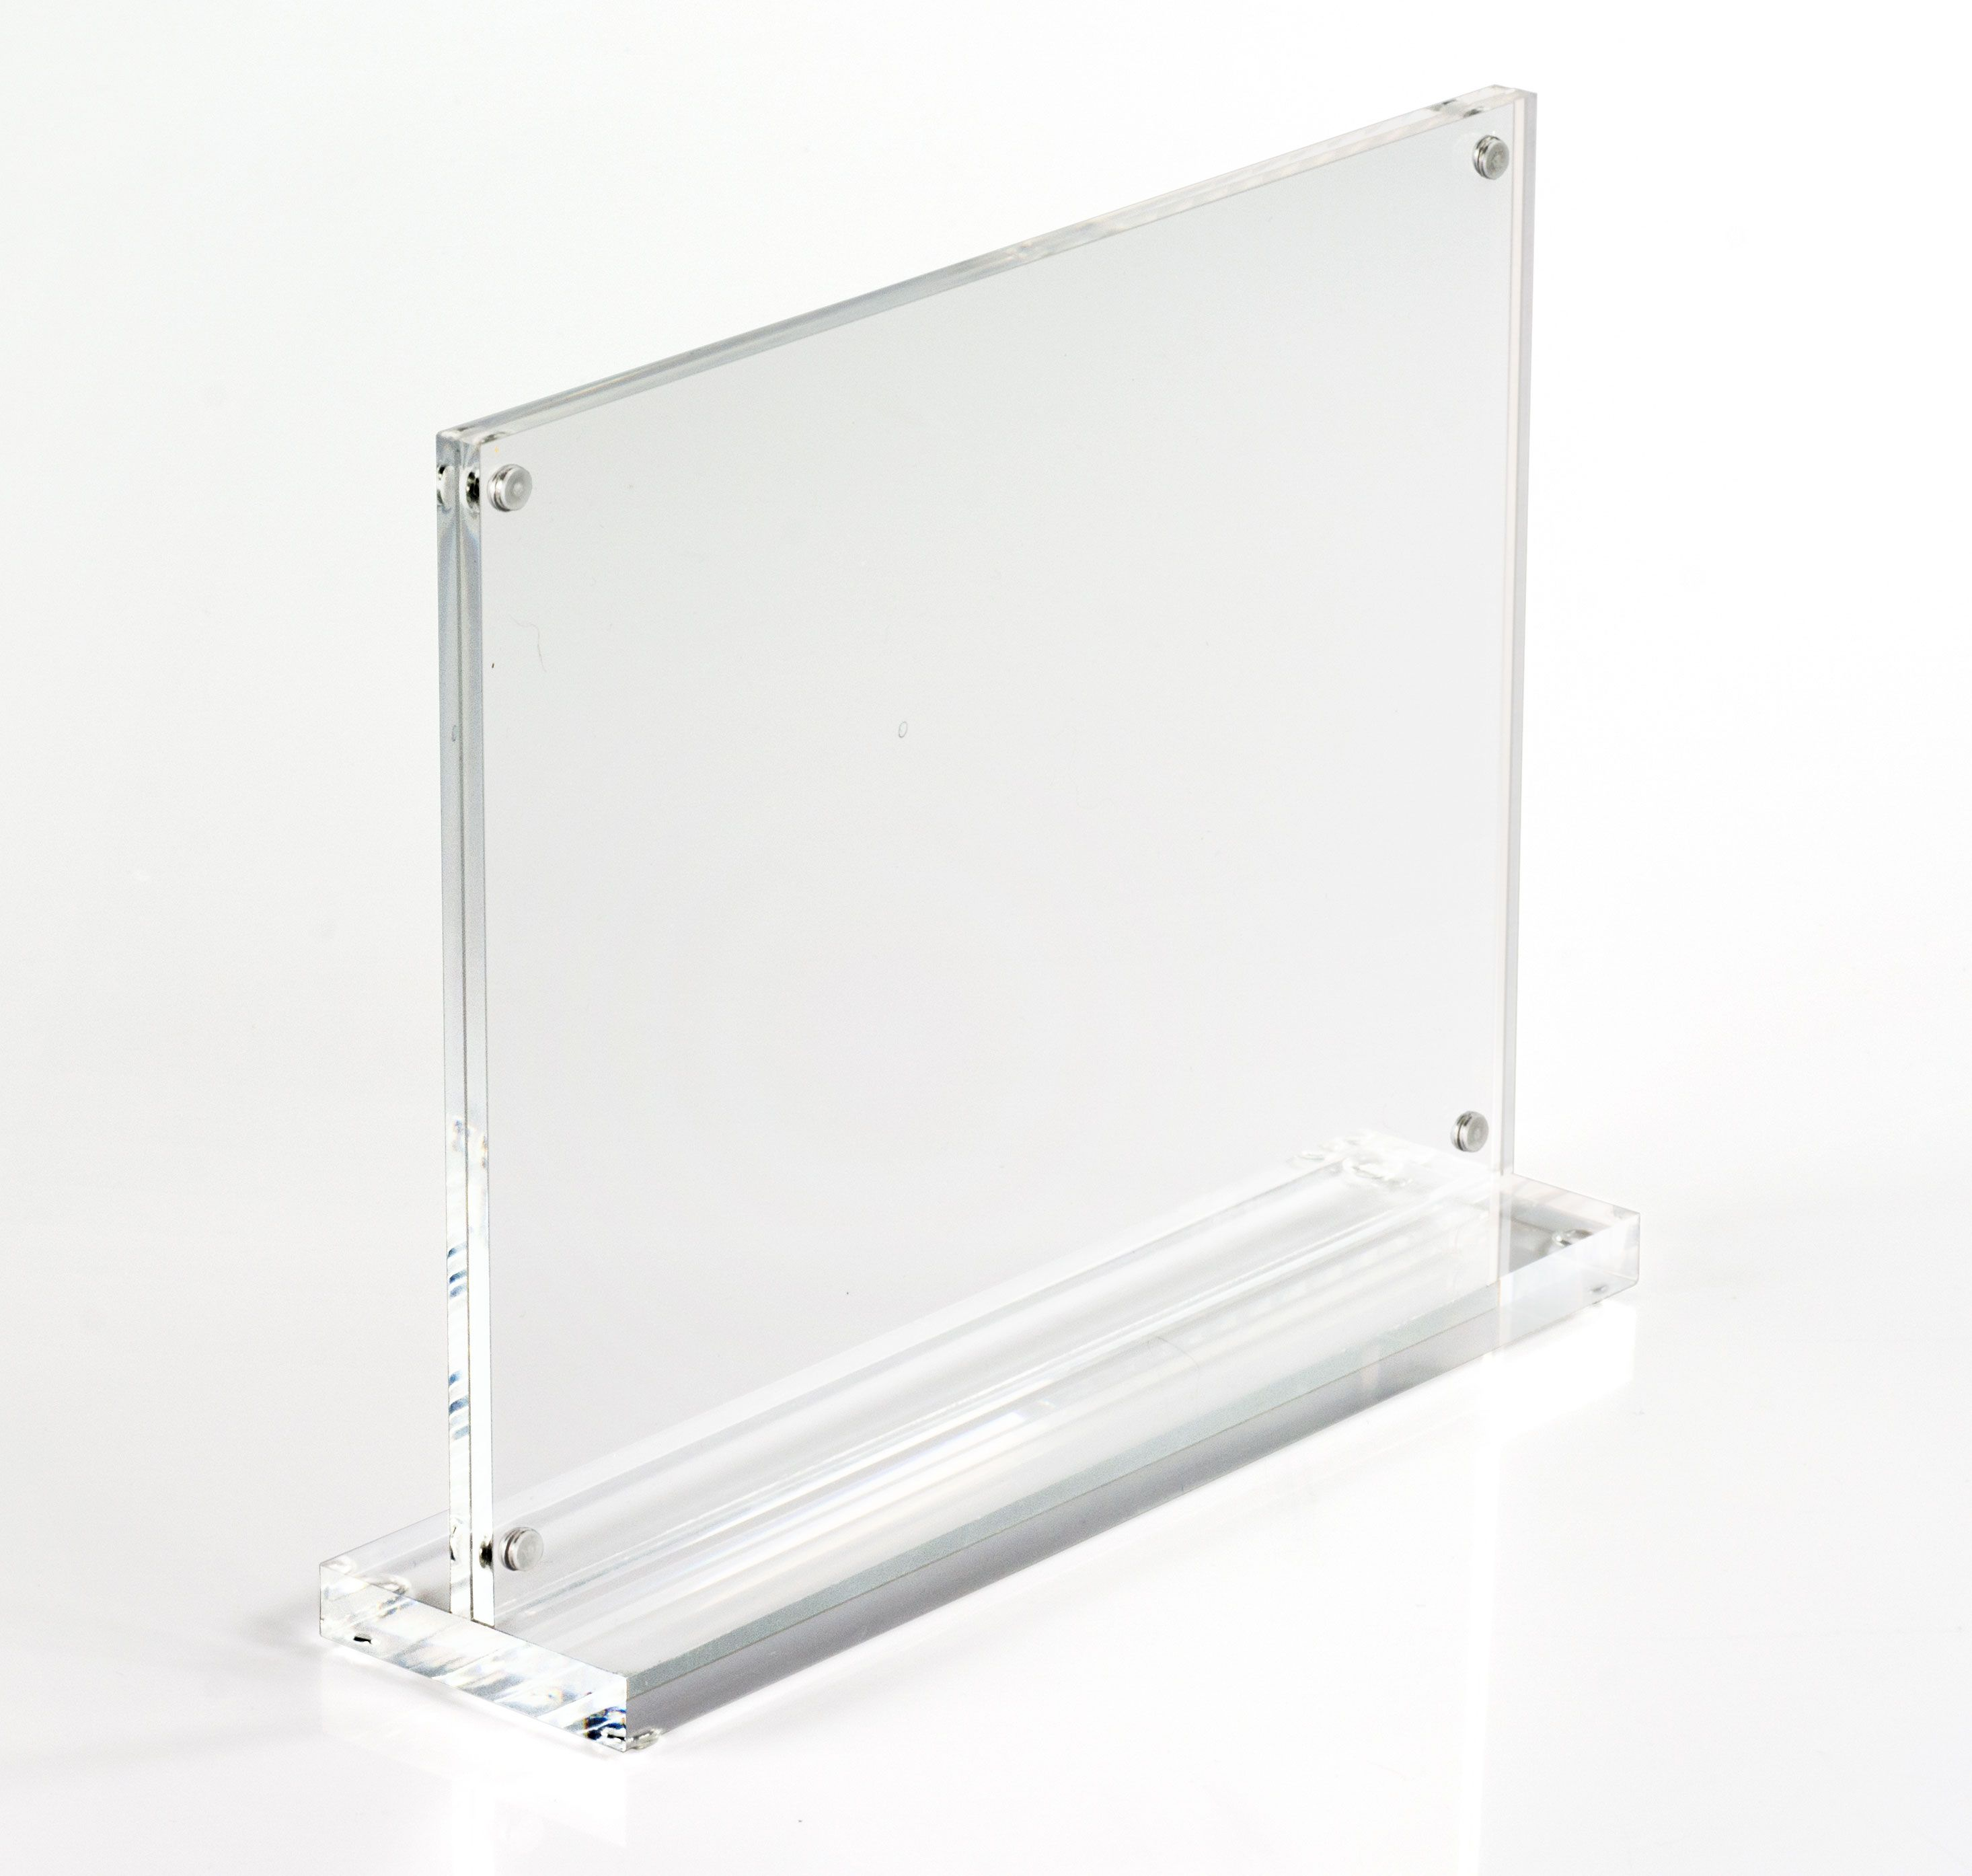 Amazoncom  Cq Acrylic 3Pack 4X6 Acrylic Frame, Magnetic Picture